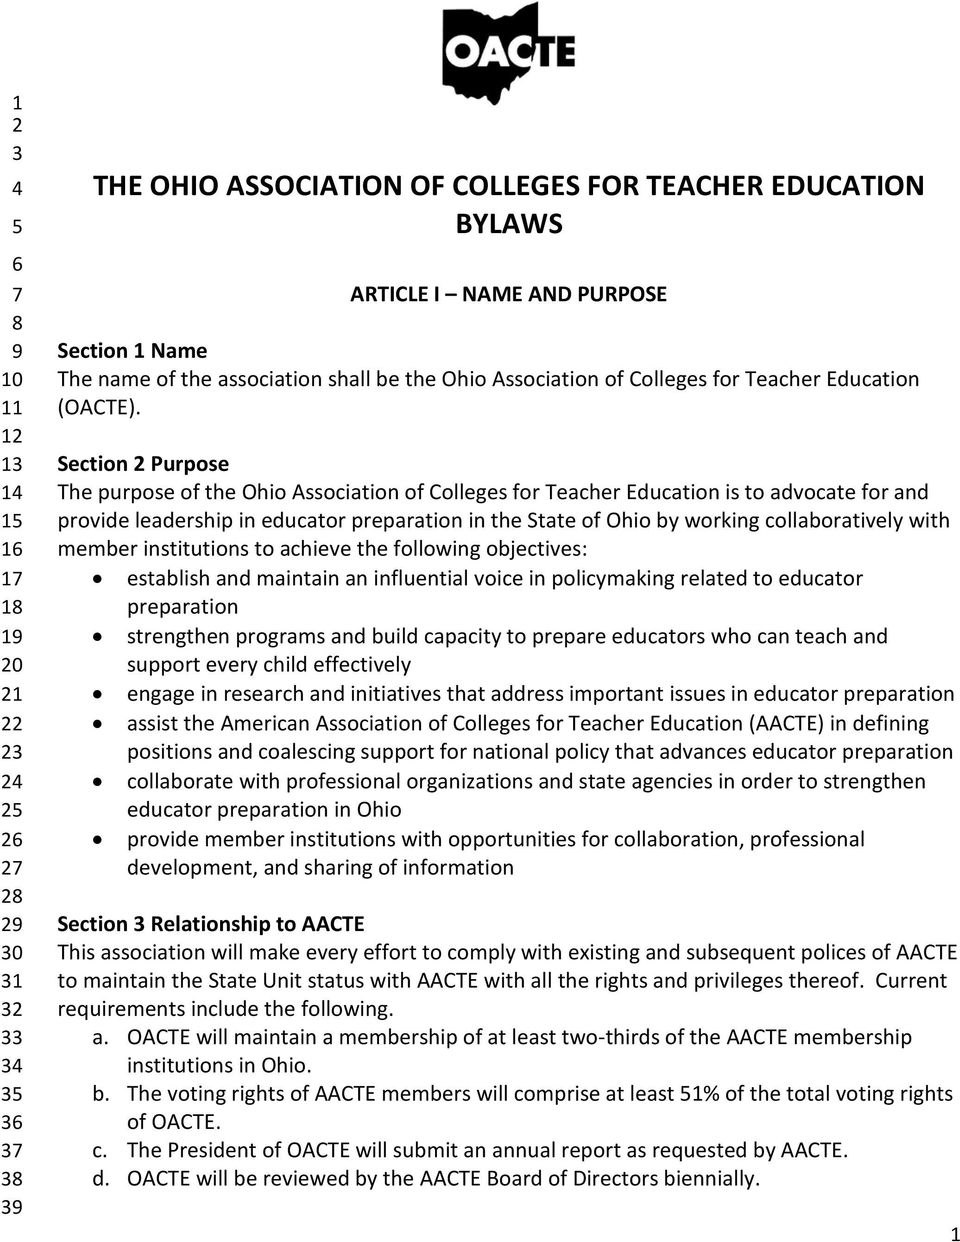 Section 2 Purpose The purpose of the Ohio Association of Colleges for Teacher Education is to advocate for and provide leadership in educator preparation in the State of Ohio by working